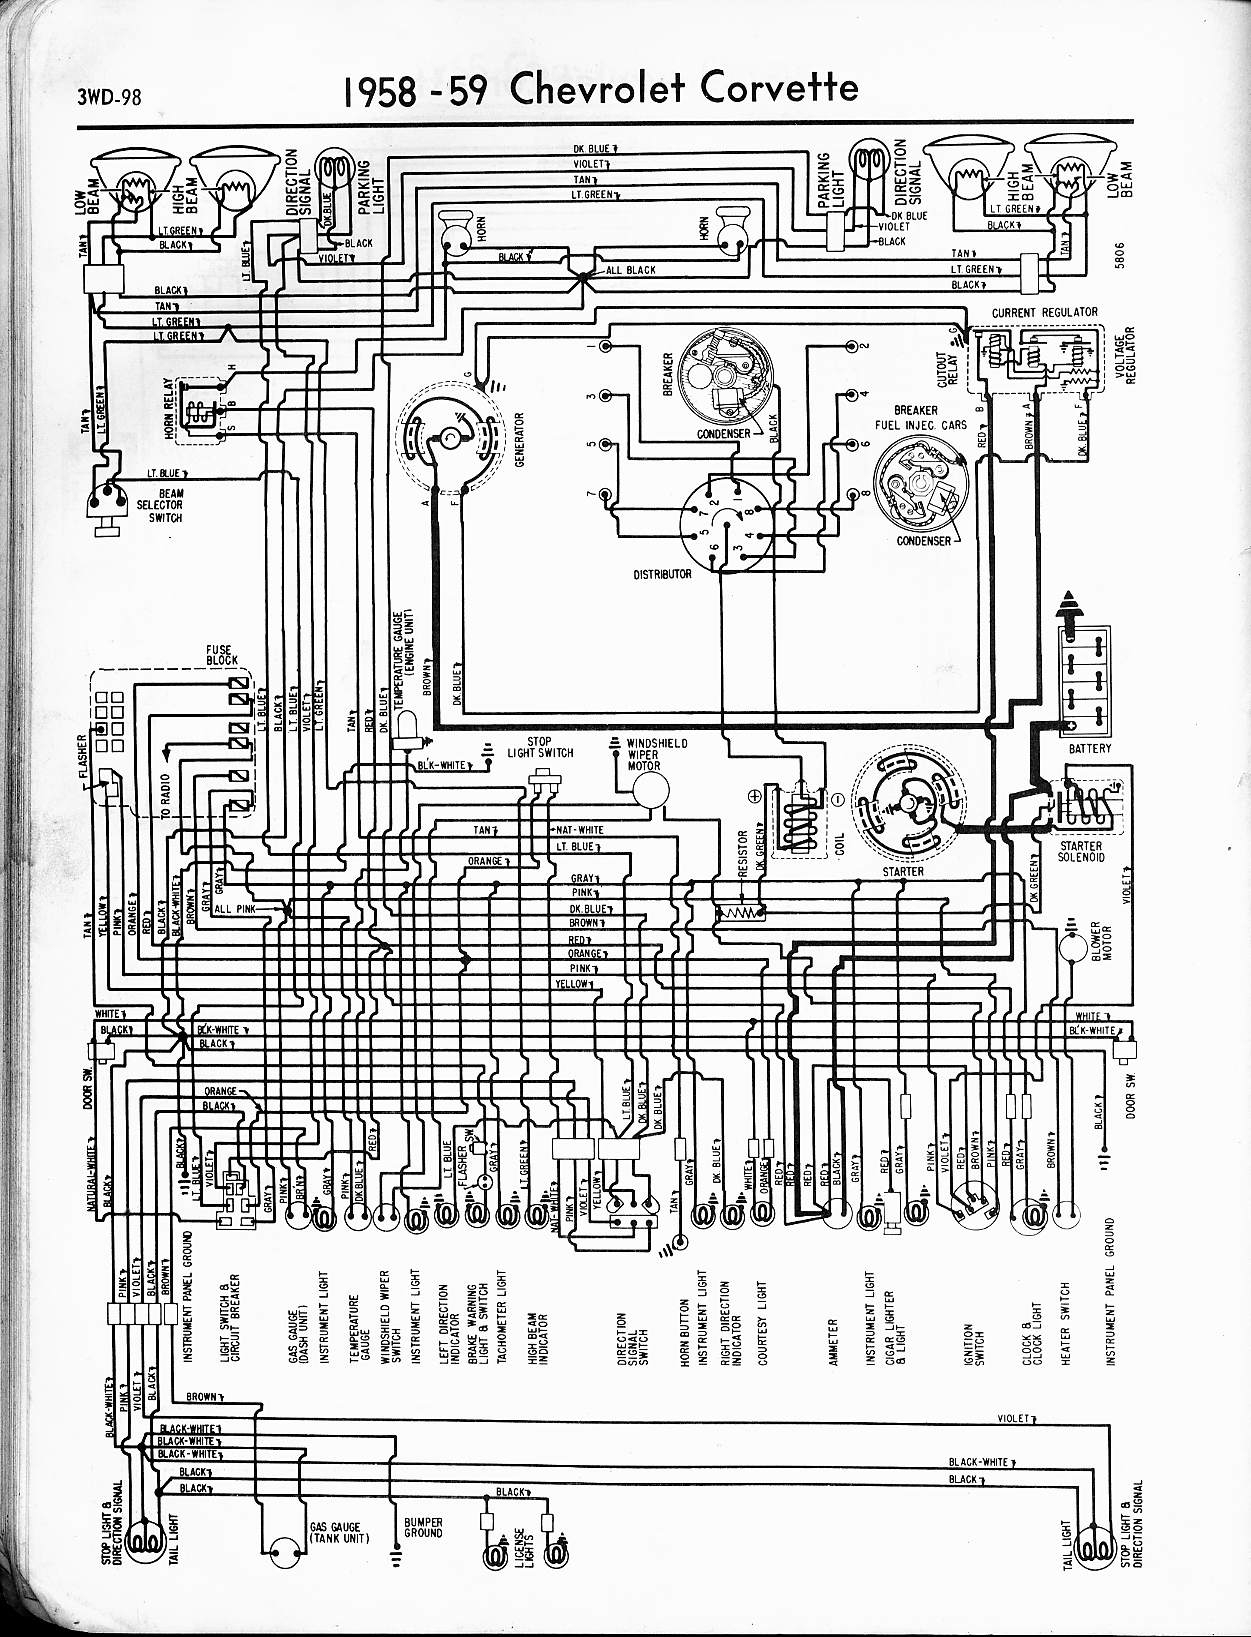 DIAGRAM] Chevy Corvette Wiring Diagram 1957 1965 Download FULL Version HD  Quality 1965 Download - Z9YO.EUROLYMPIQUES.FRz9yo.eurolympiques.fr